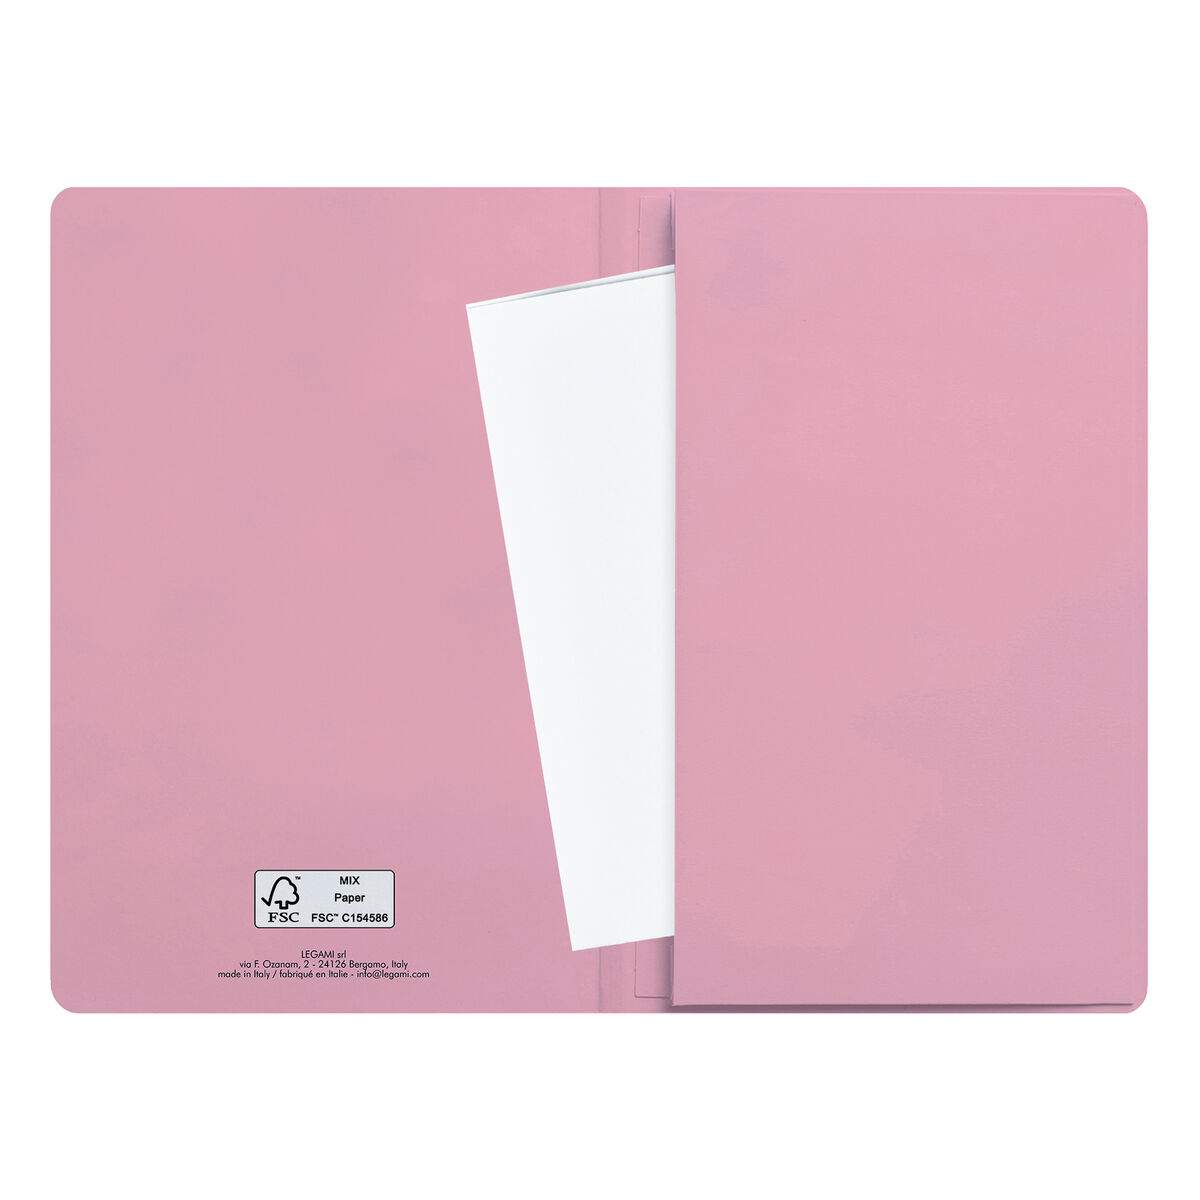 Agenda 12 Mesi Settimanale - Medium con Notebook - 2021, , zoo